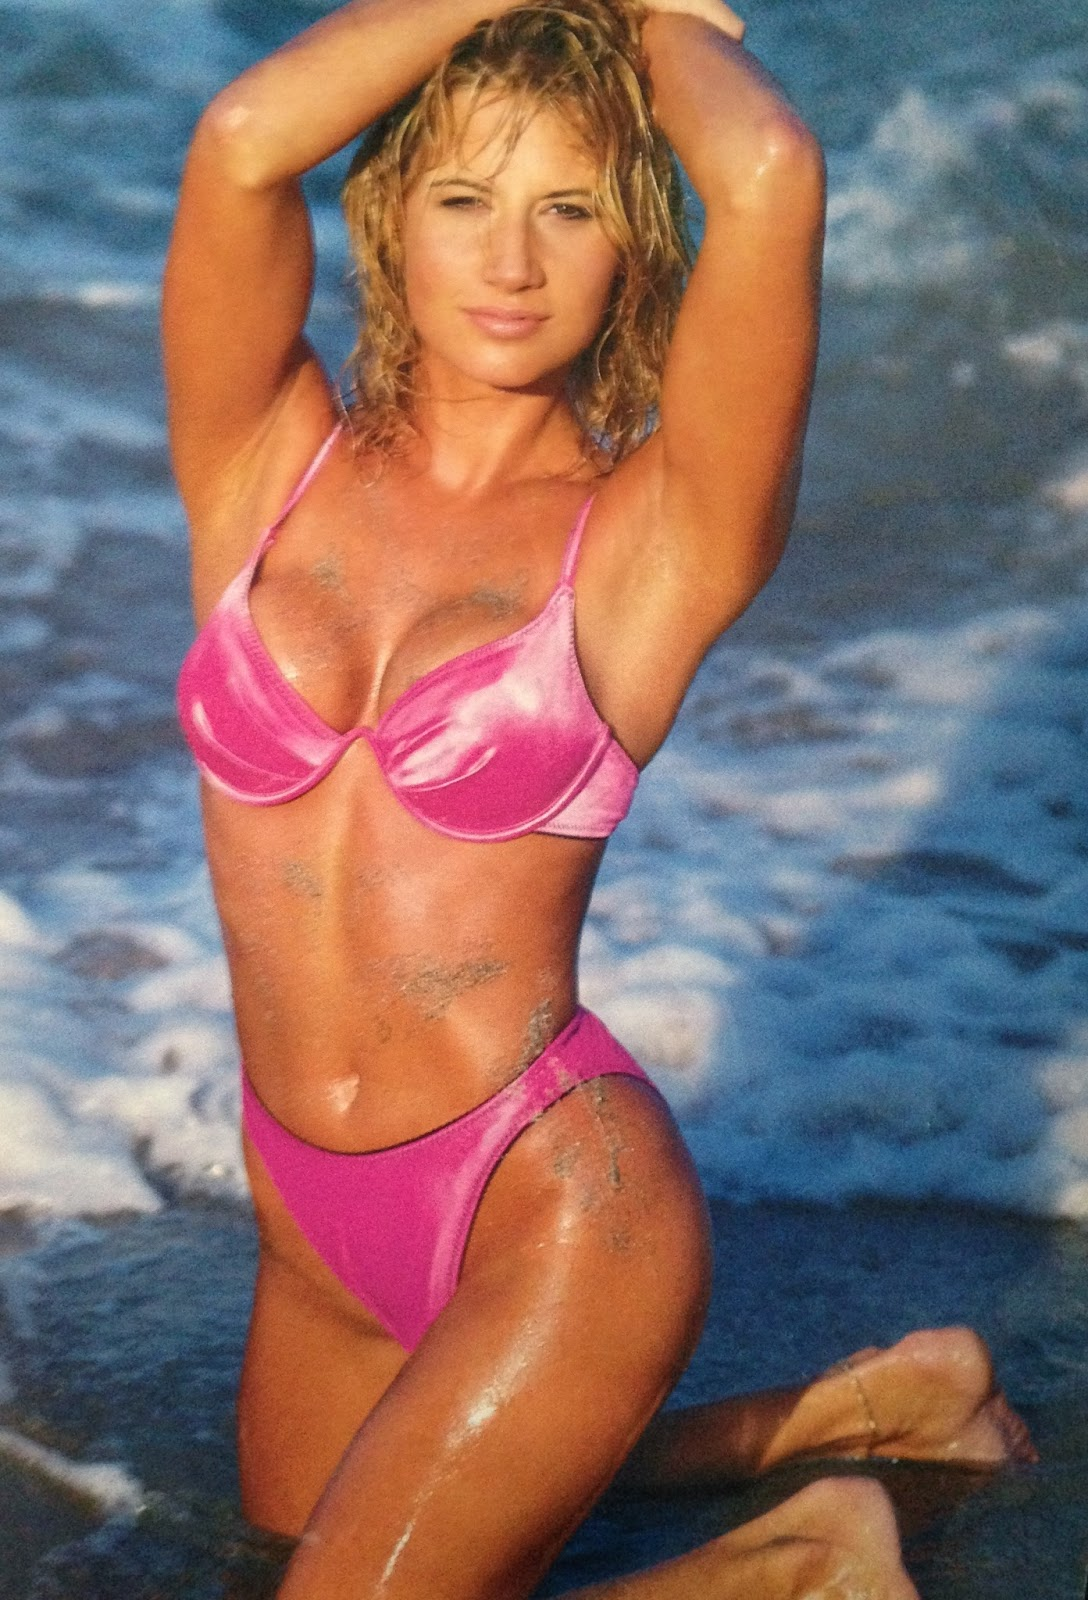 WWE: WWF RAW MAGAZINE - January 1998 - Sunny in a pink swimsuit